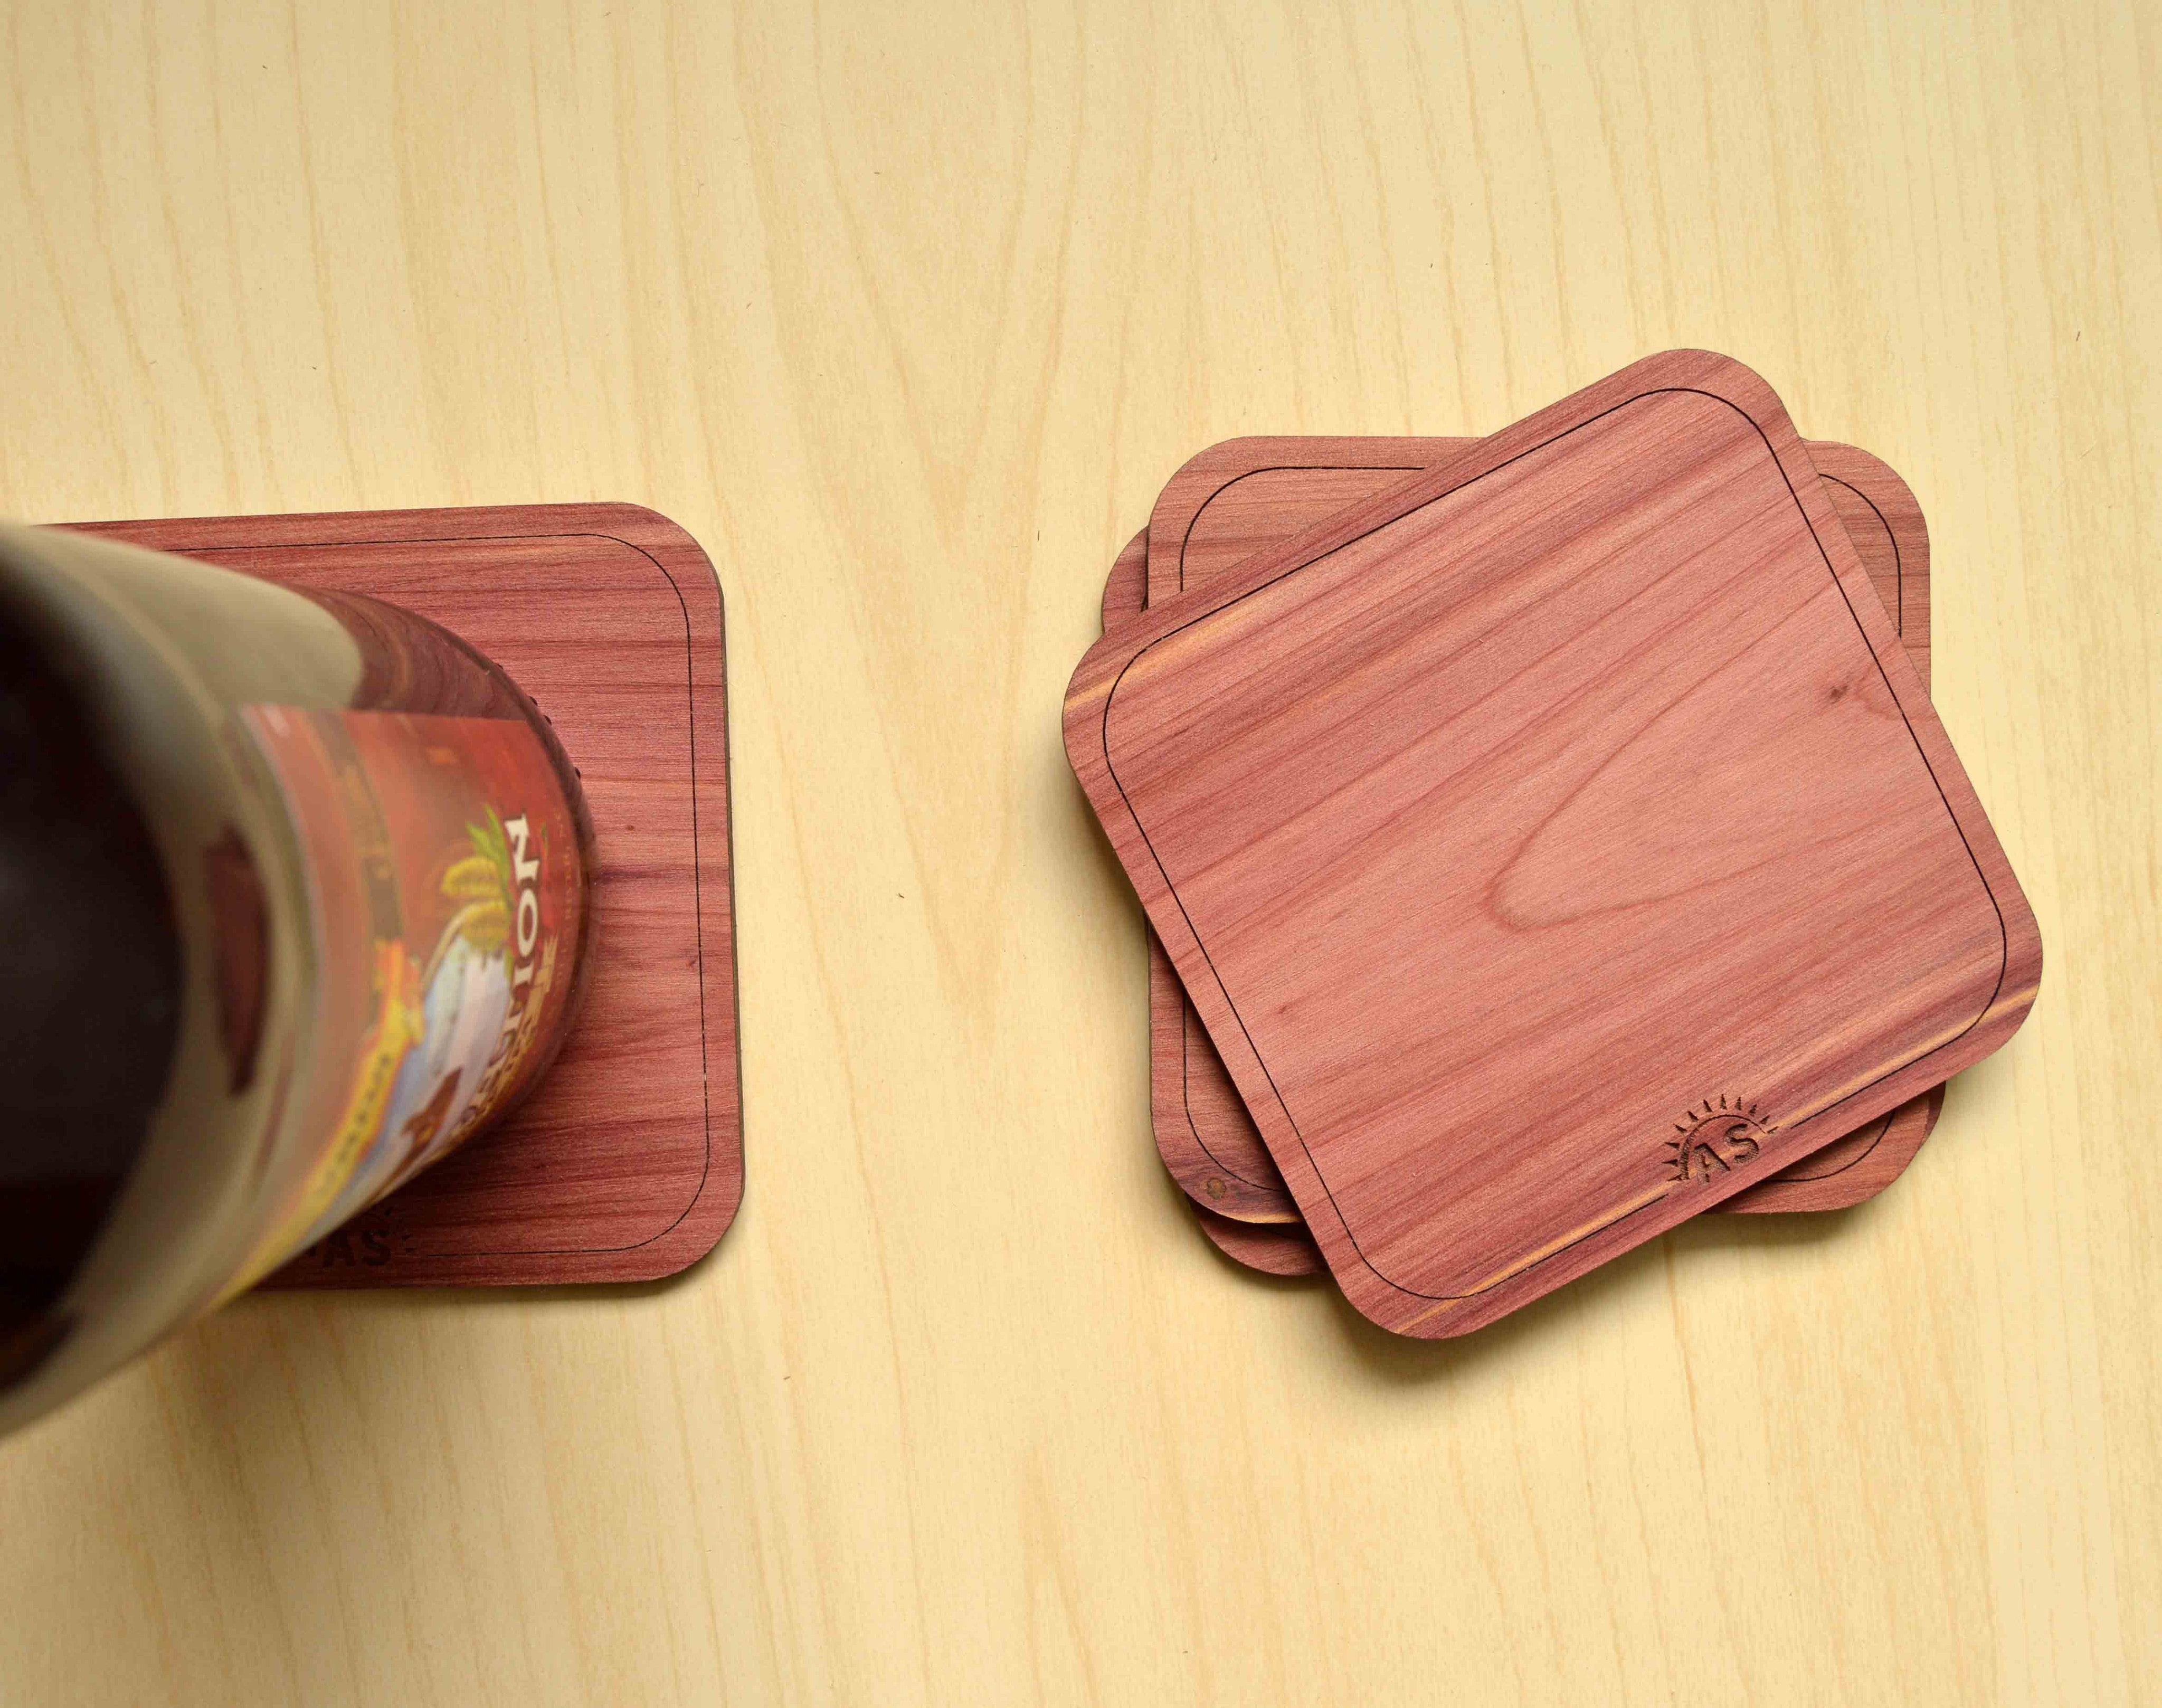 Made in USA - American Flag Wood Coasters from The Wood Reserve